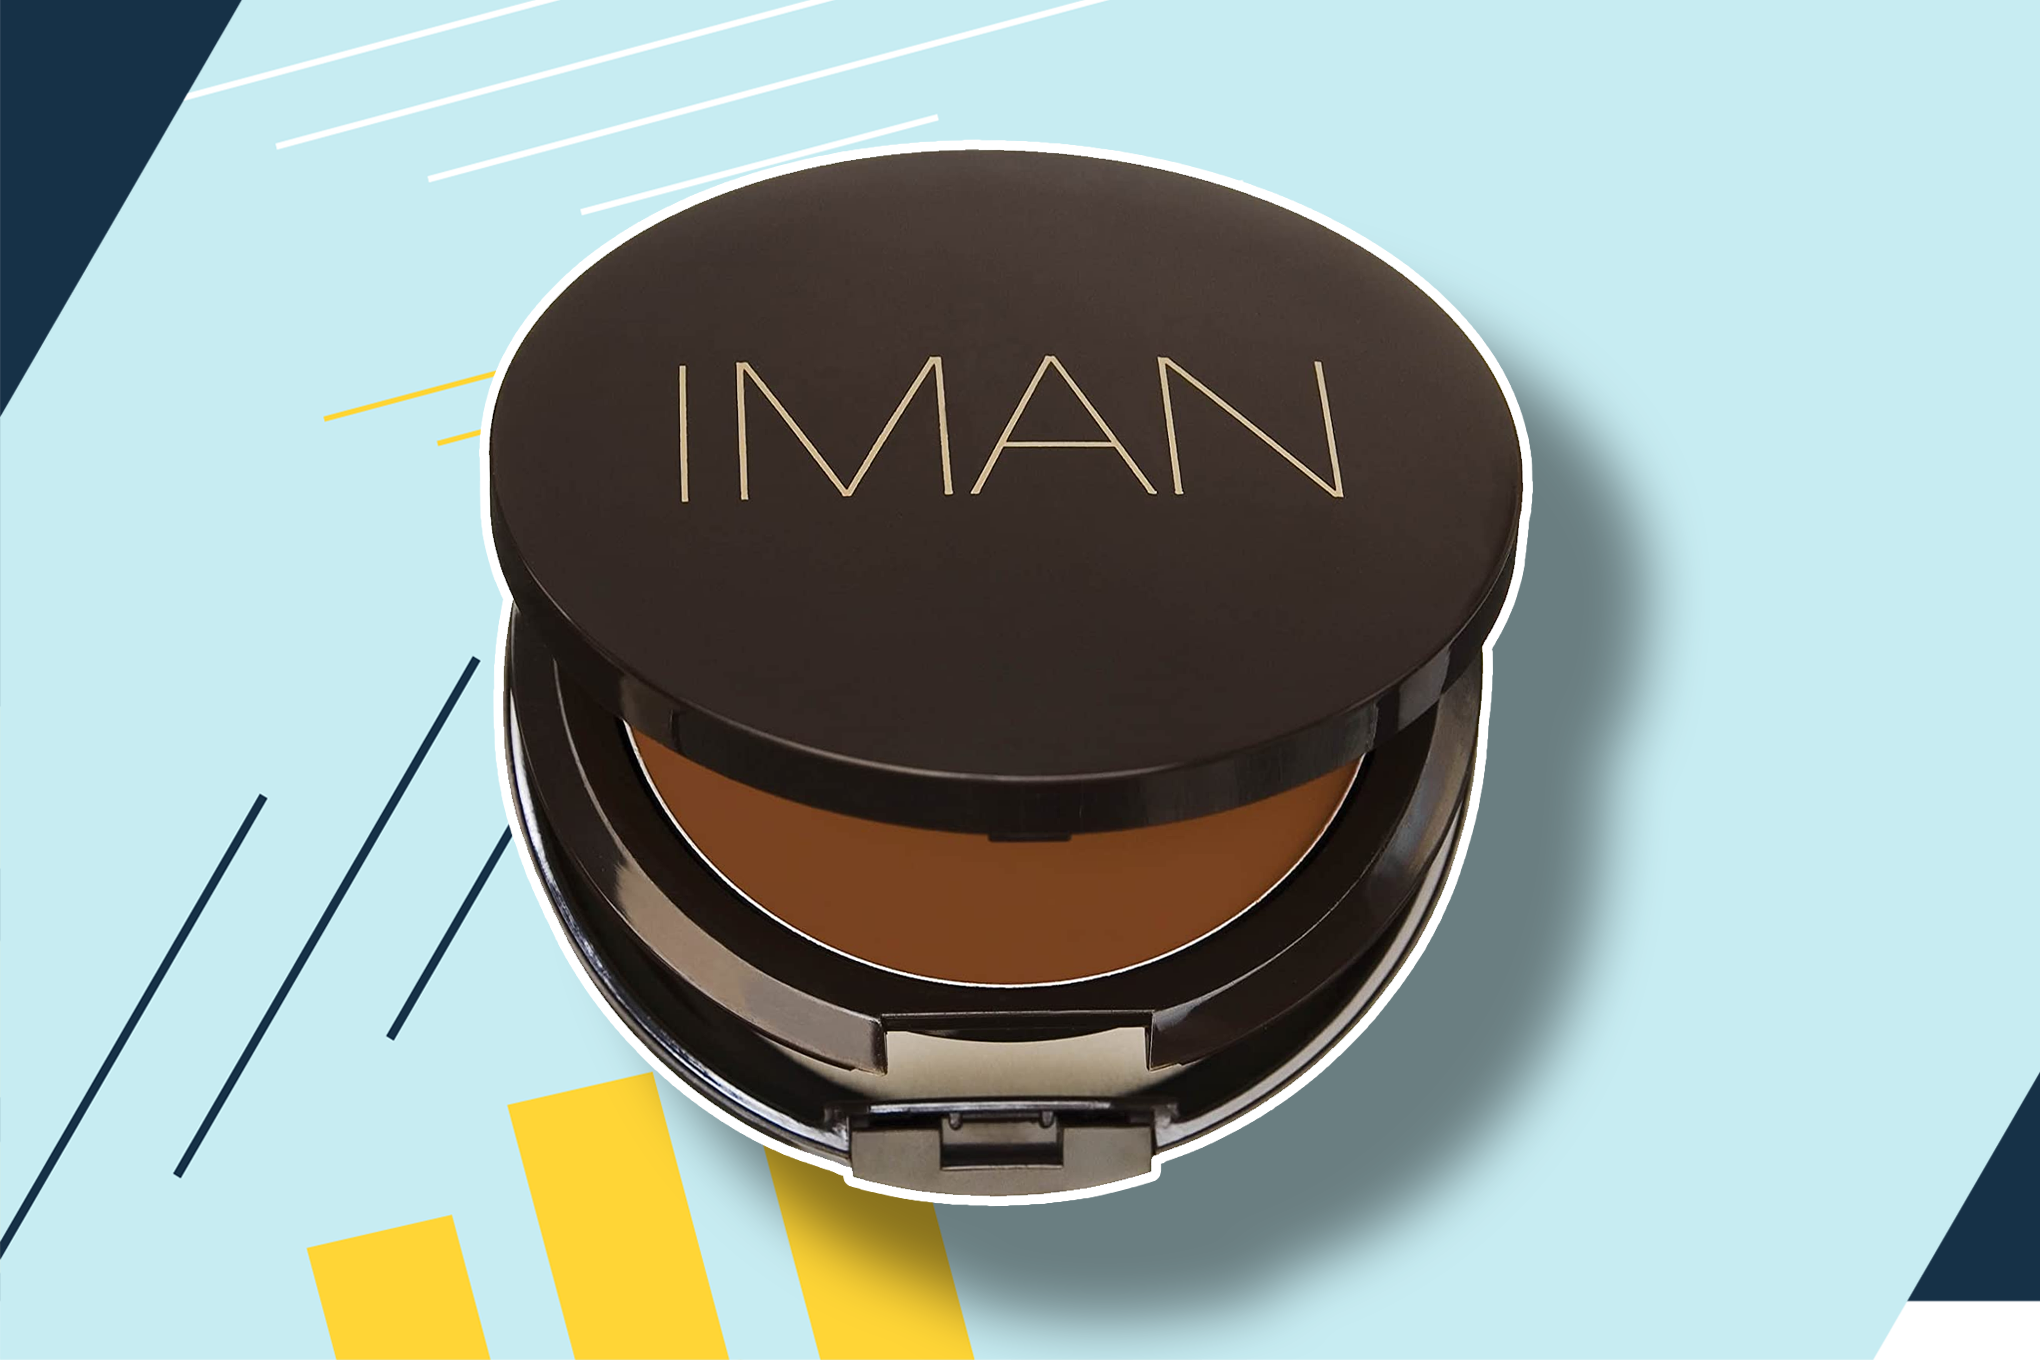 The Best Foundation Makeup For Men In